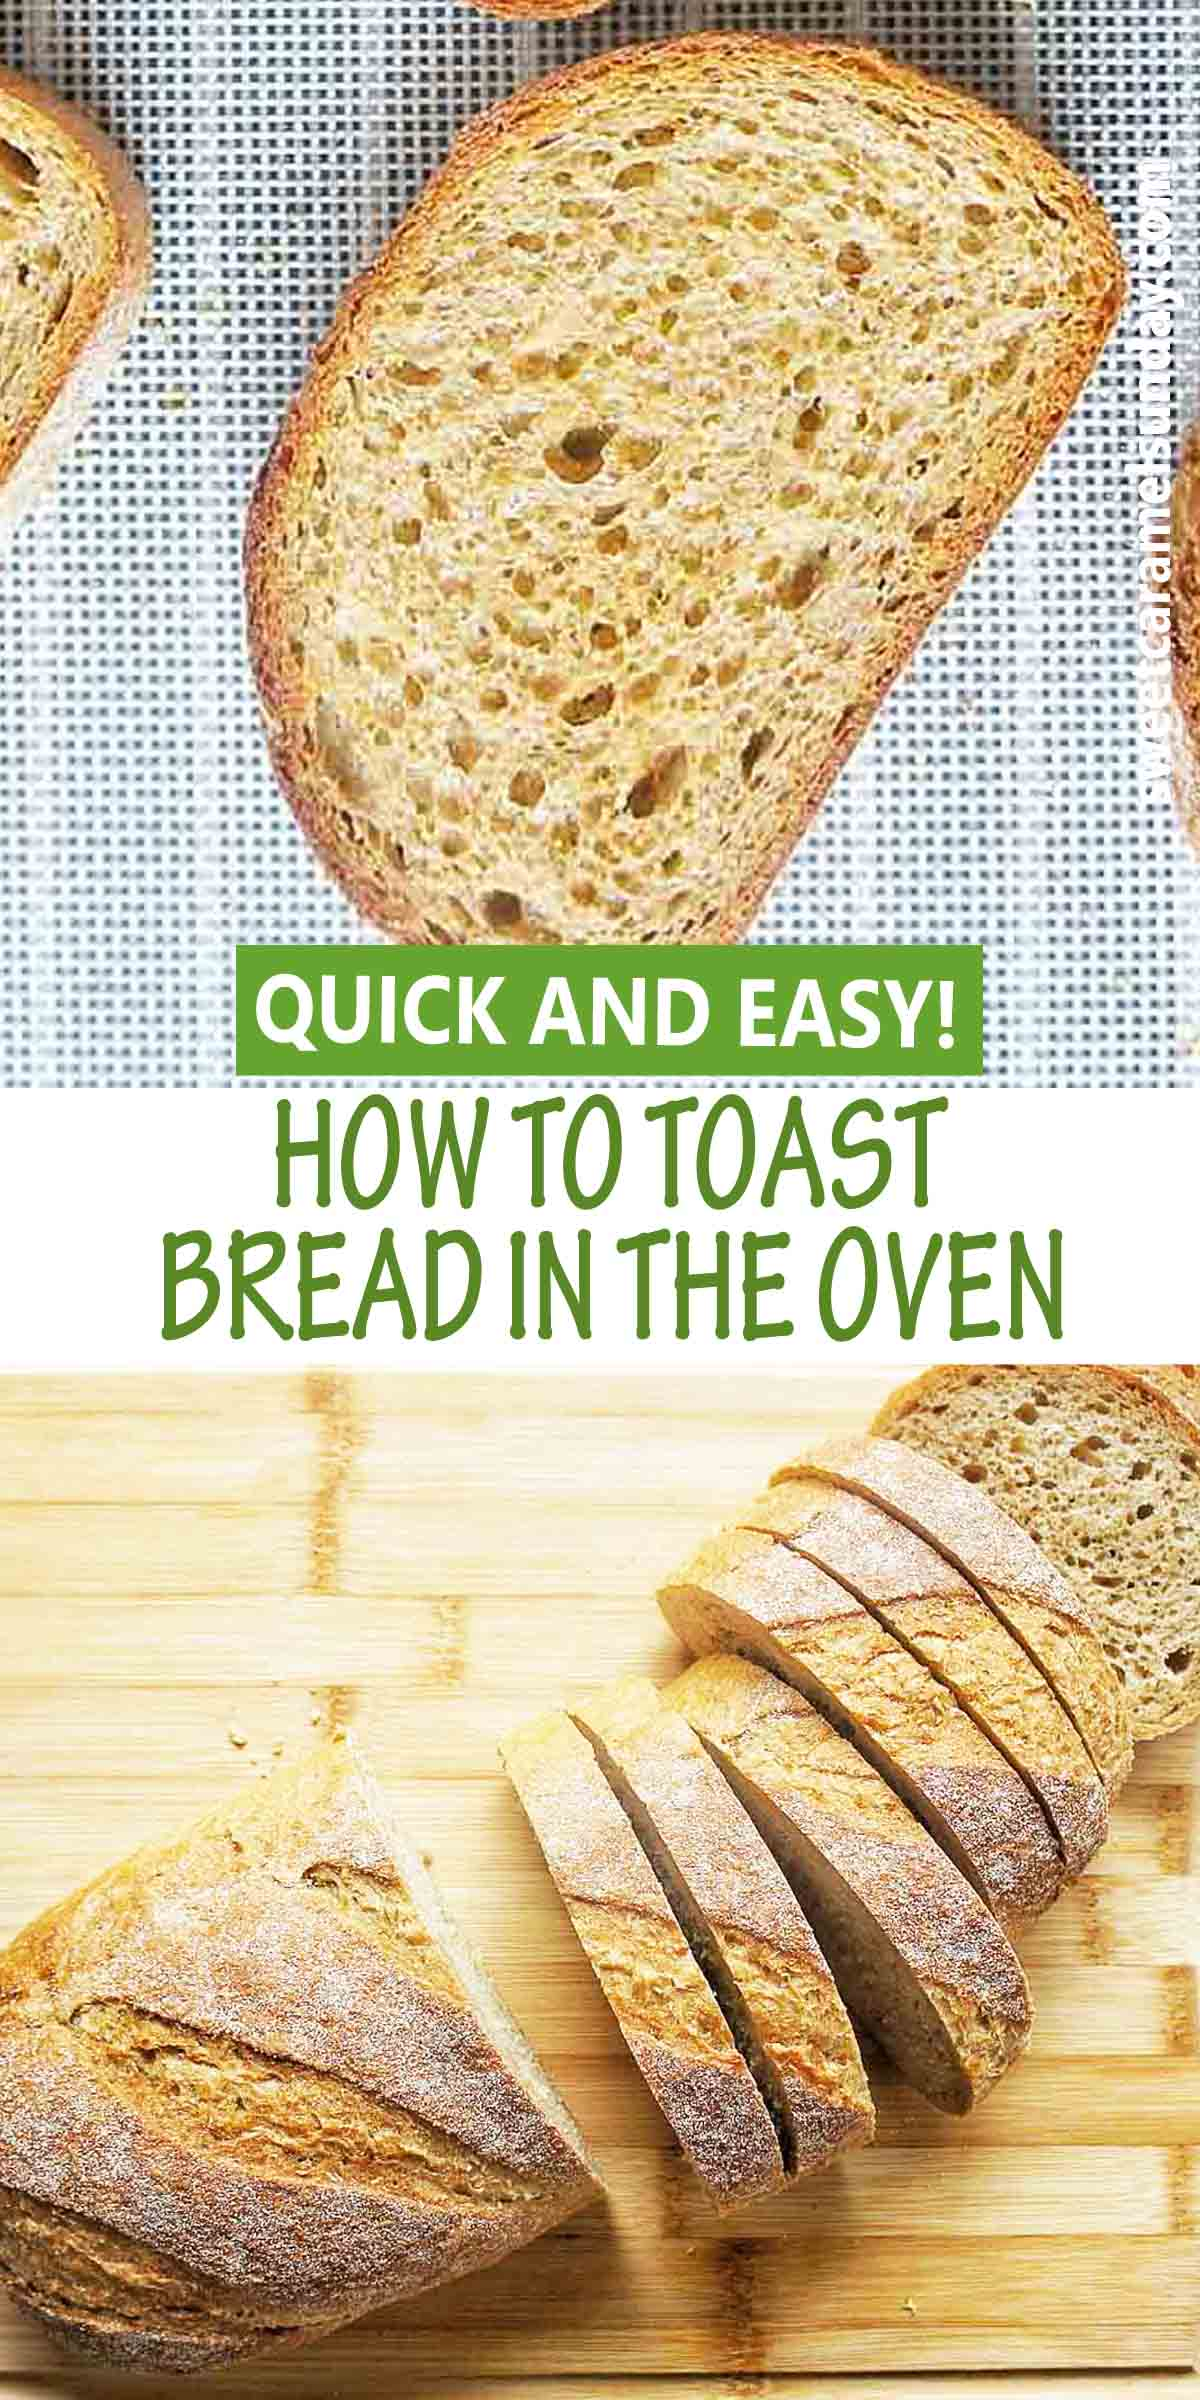 How to Toast Bread in the oven with text label